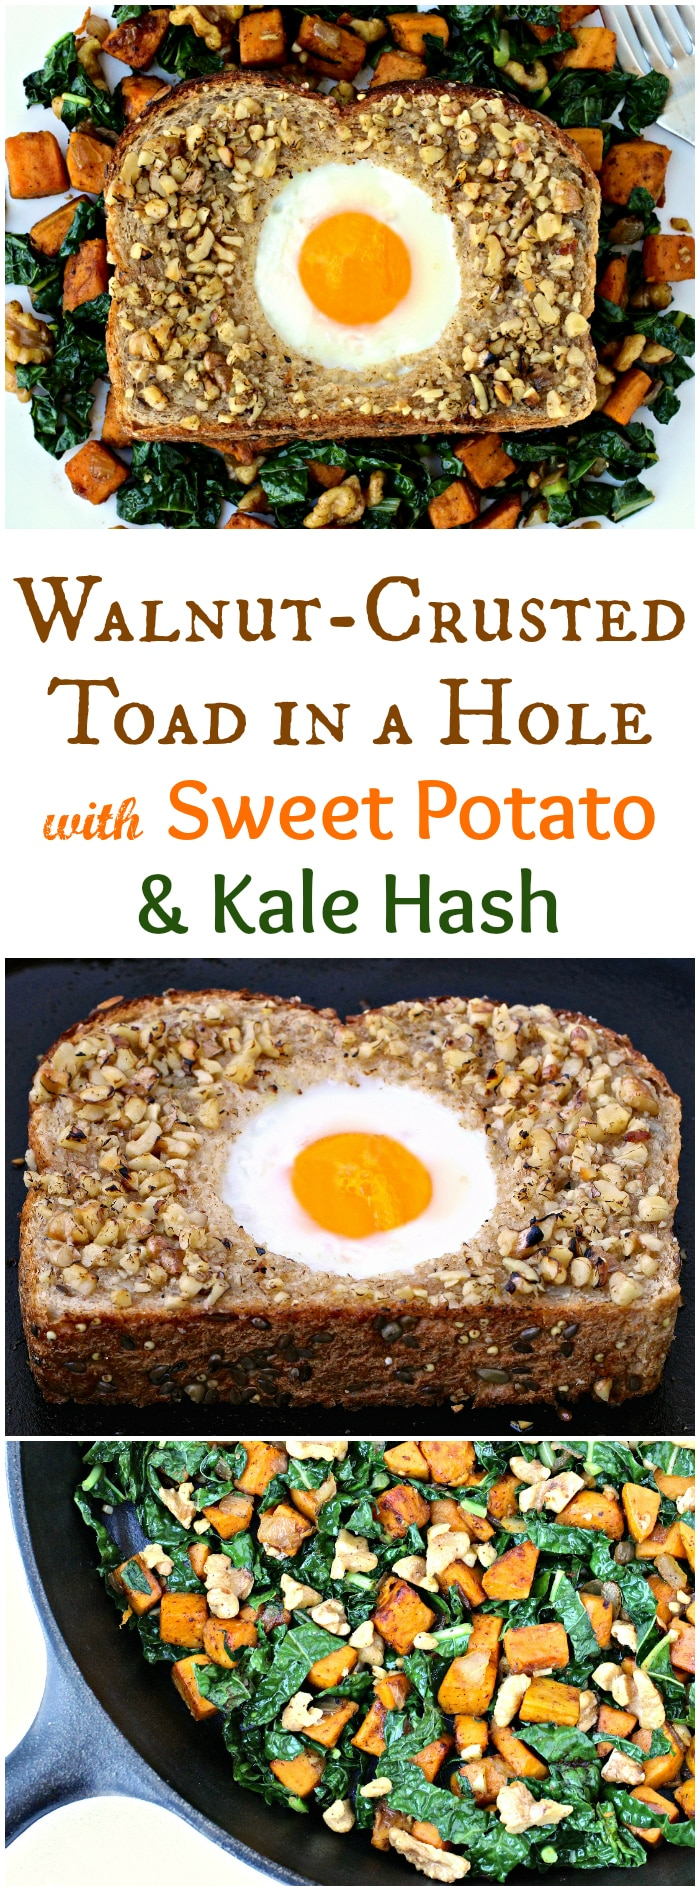 Walnut-Crusted Toad in a Hole with Mediterranean Sweet Potato and Kale Hash | @foodiephysician